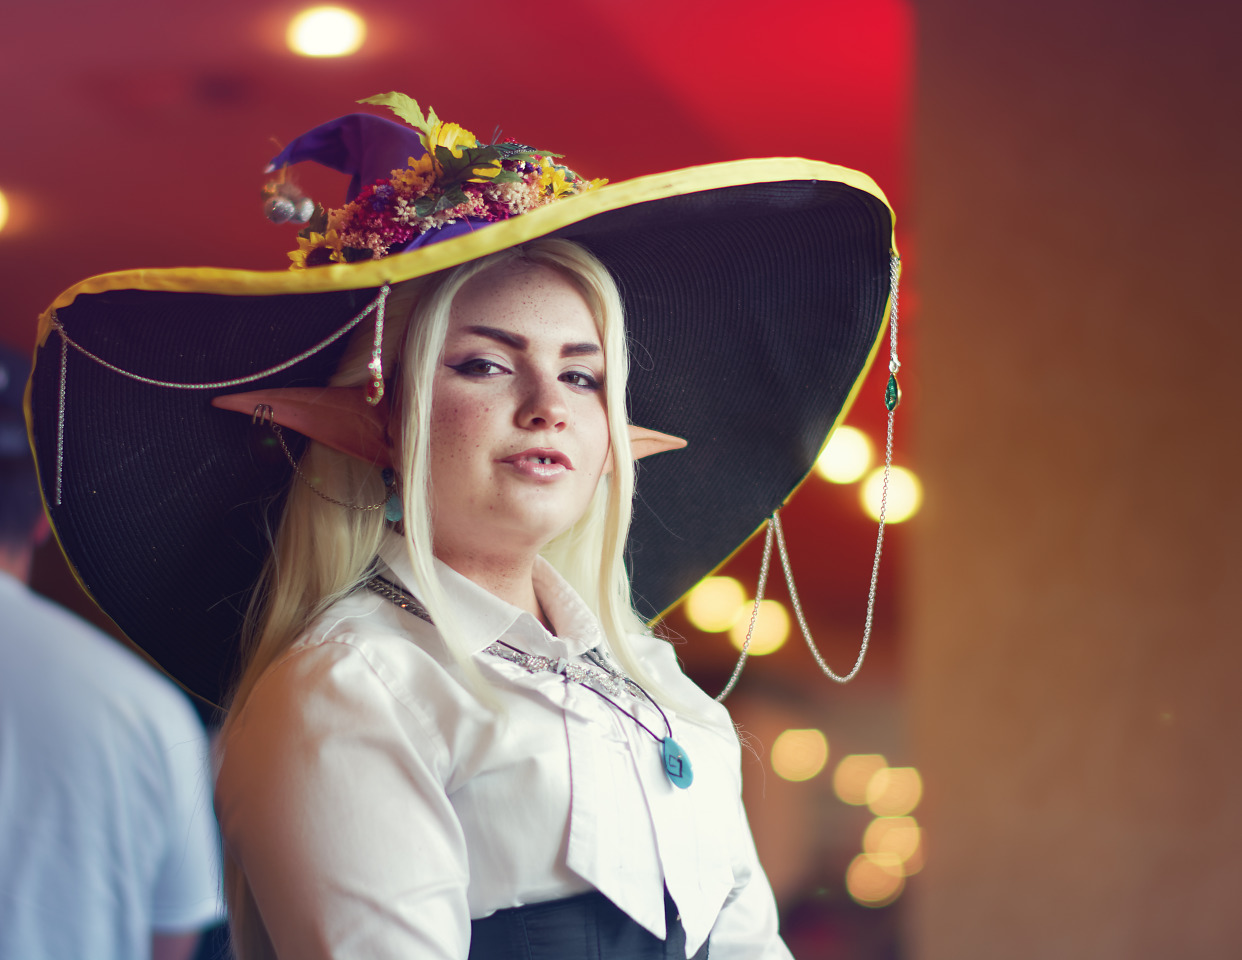 Cosplay of Taako a character from The Adventure Zone Podcast at Quakecon 2017